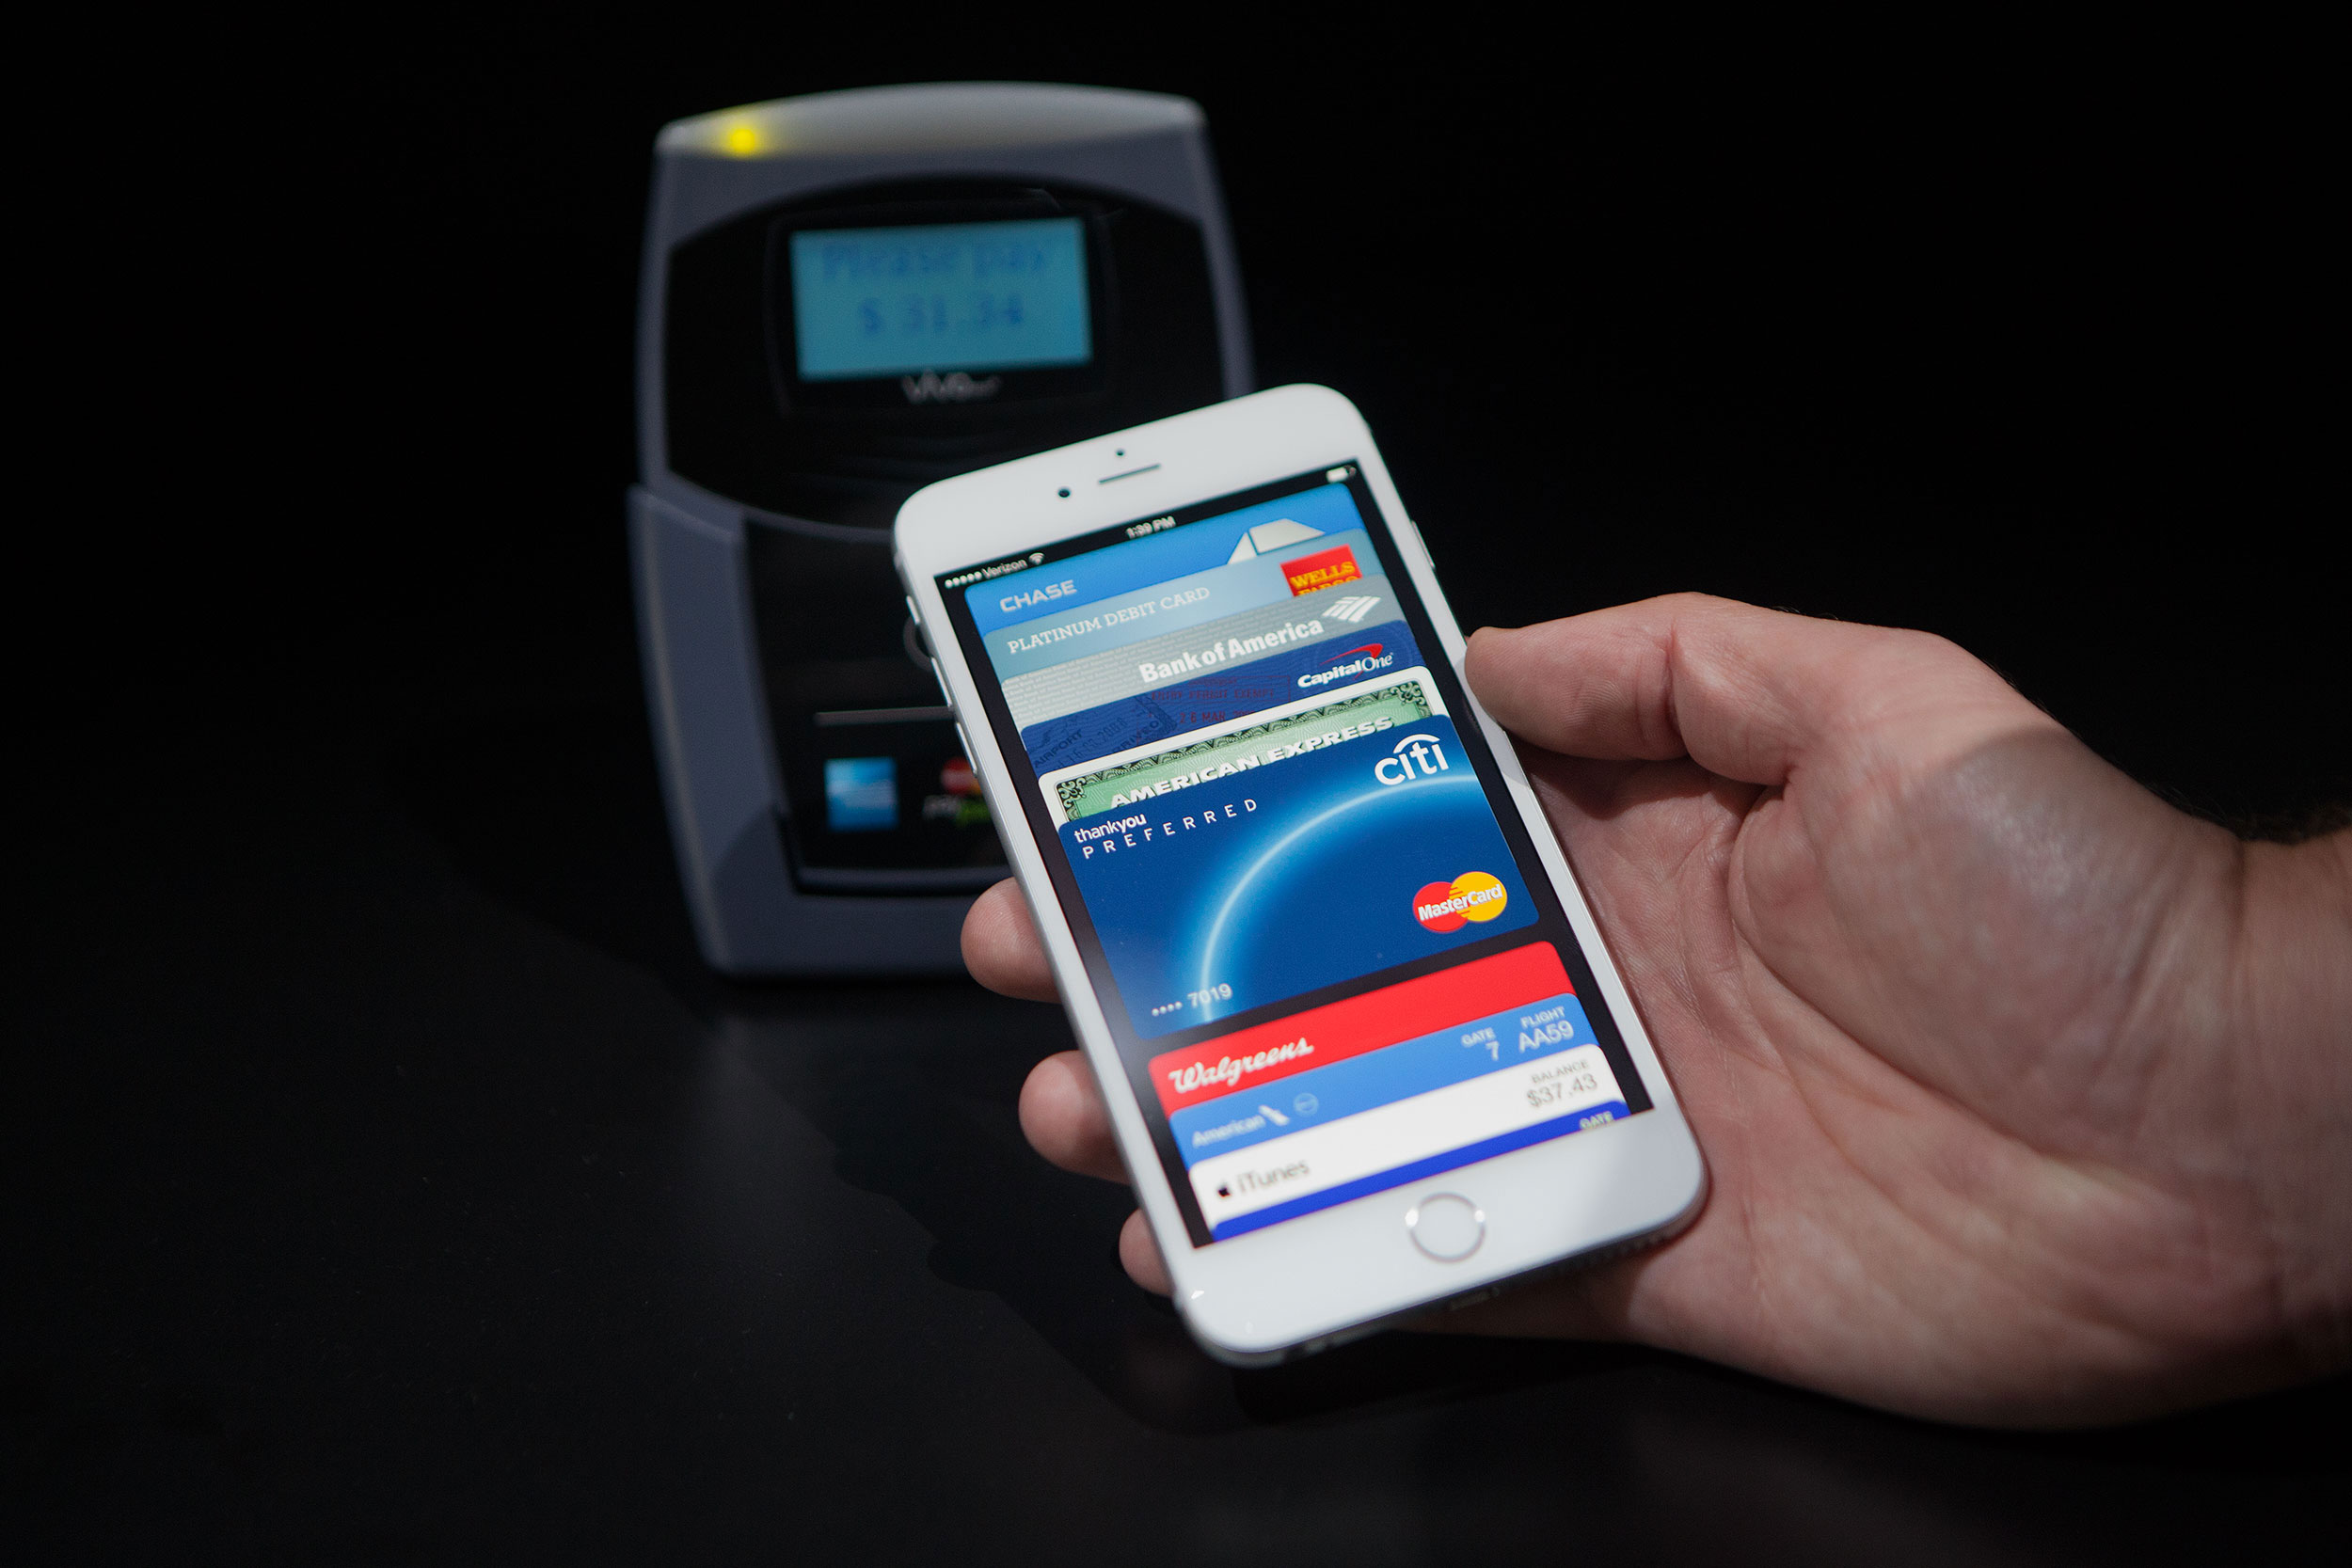 Apple Pay Rewards Program could offer exclusive benefits and perks for using the service